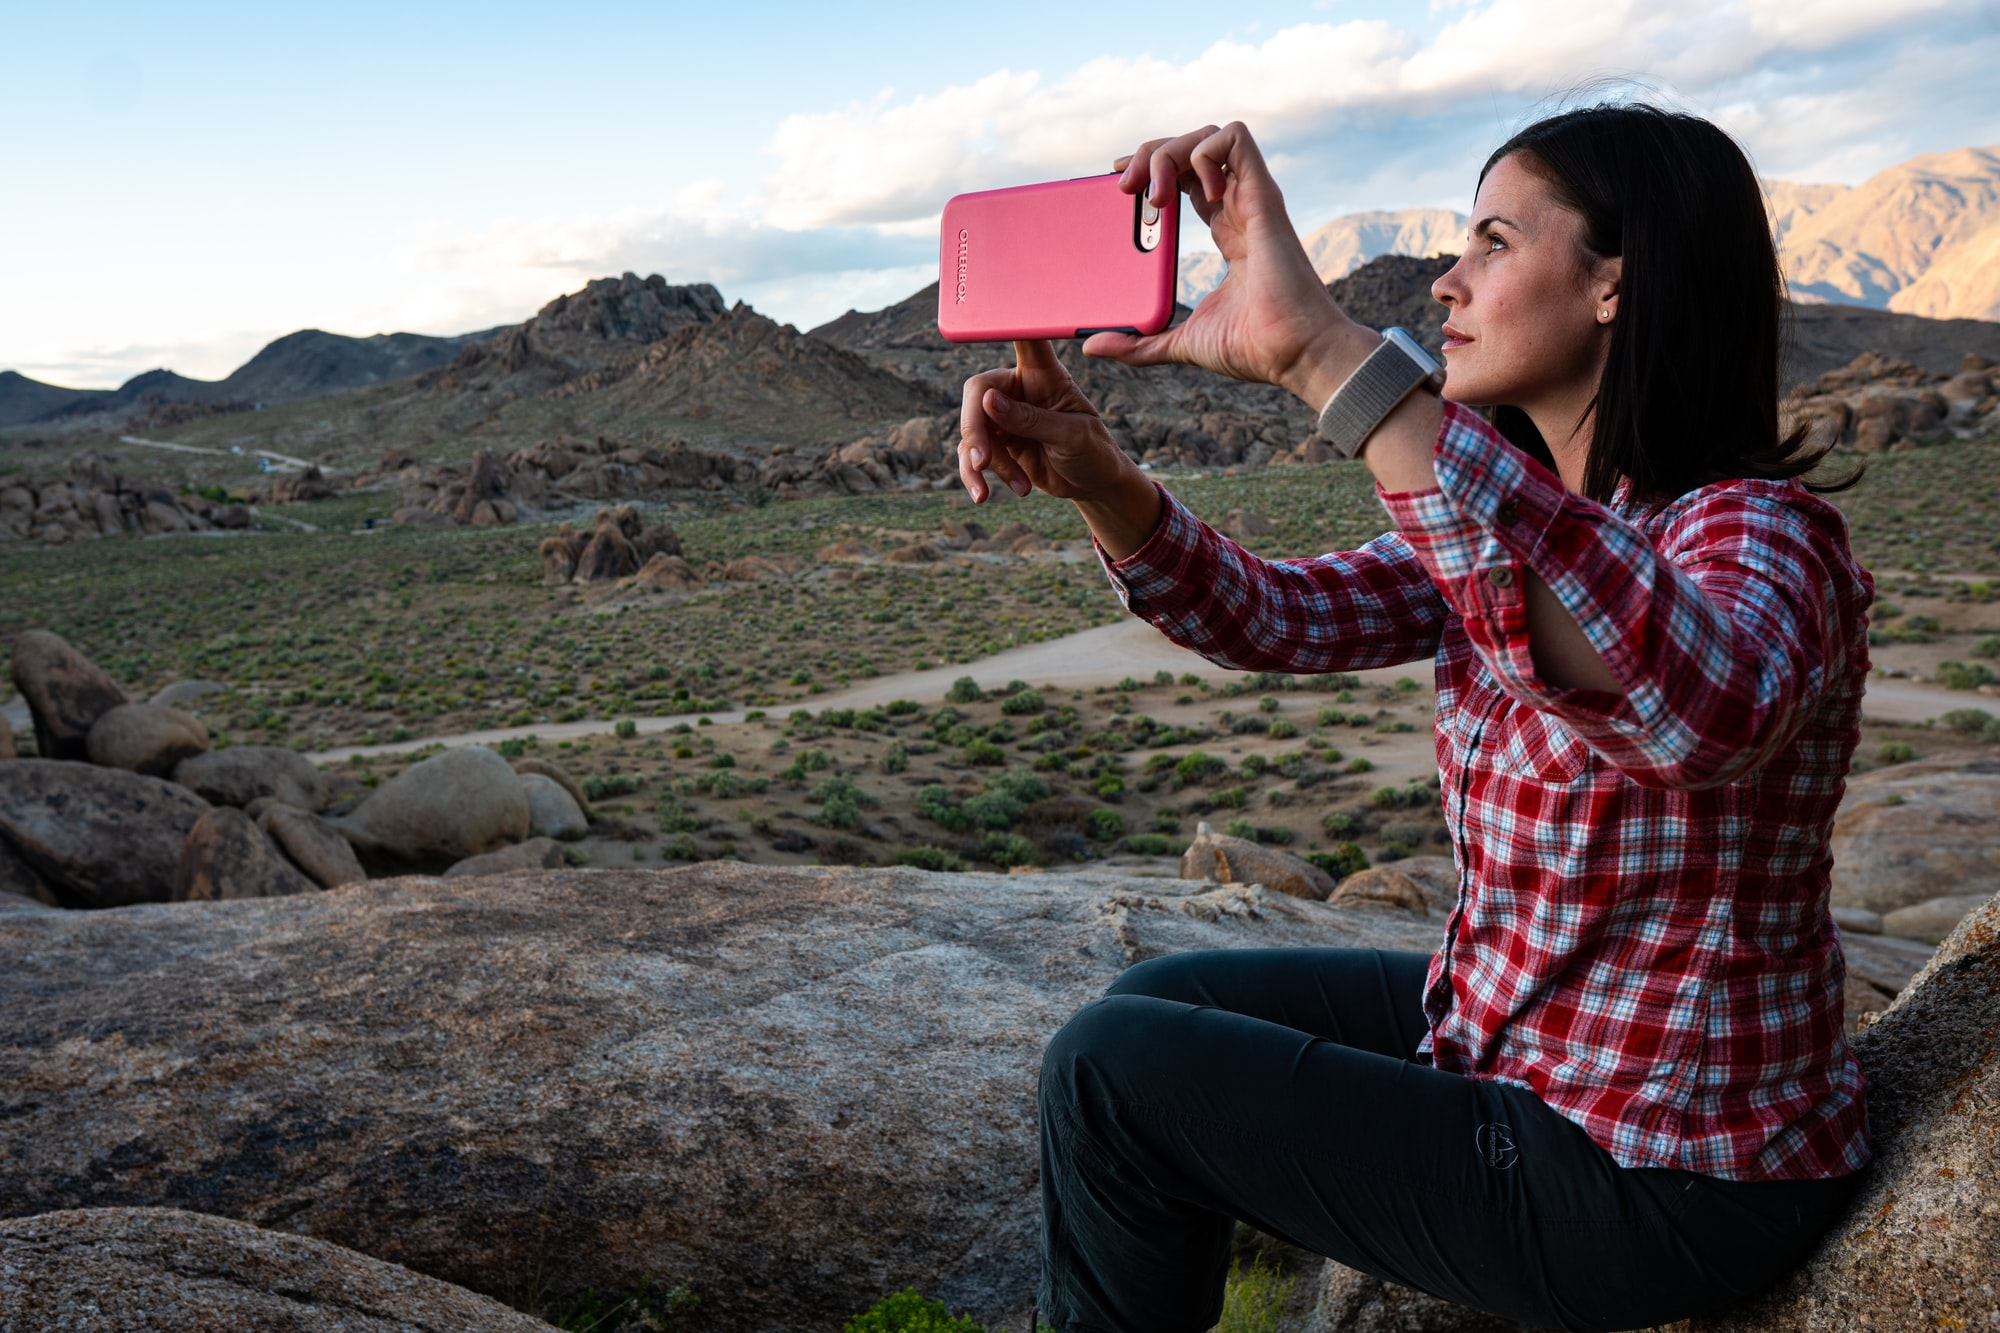 Beautiful woman/wife taking selfie with iPhone while hiking in the rocks of Alabama Hills, Ca. I love watching my wife take photos of herself .